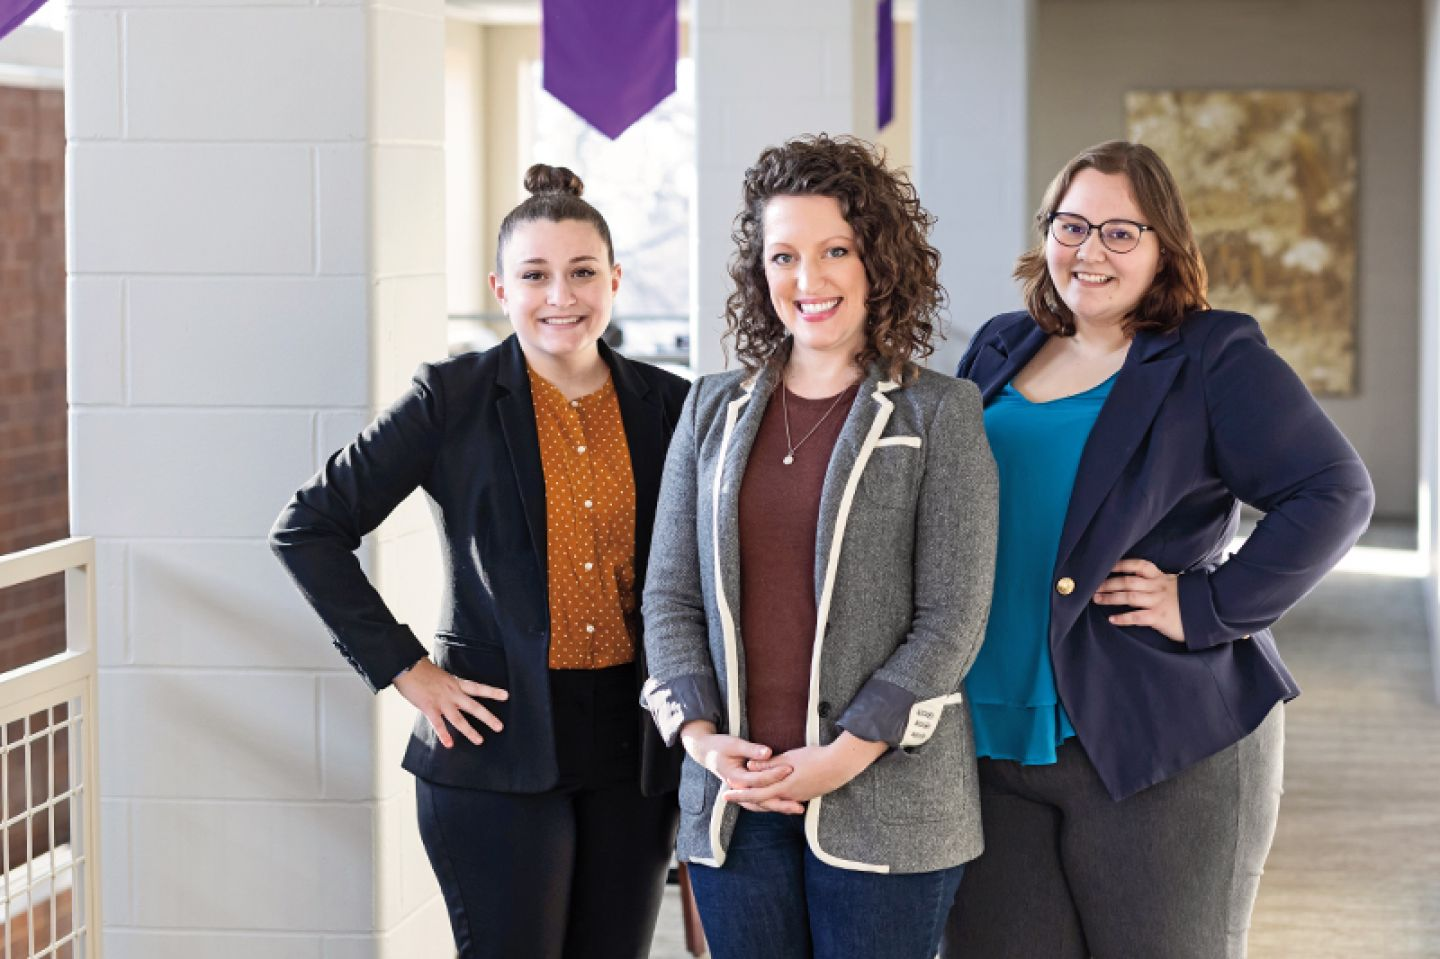 Professor Katie Campbell, Ph.D., flanked by nursing majors Meghan Landry '21 (left) and Meghan Katers '21 are in year three of a collaborative undergraduate research project, which has engaged mayo clinic  And received high accolades from the university.